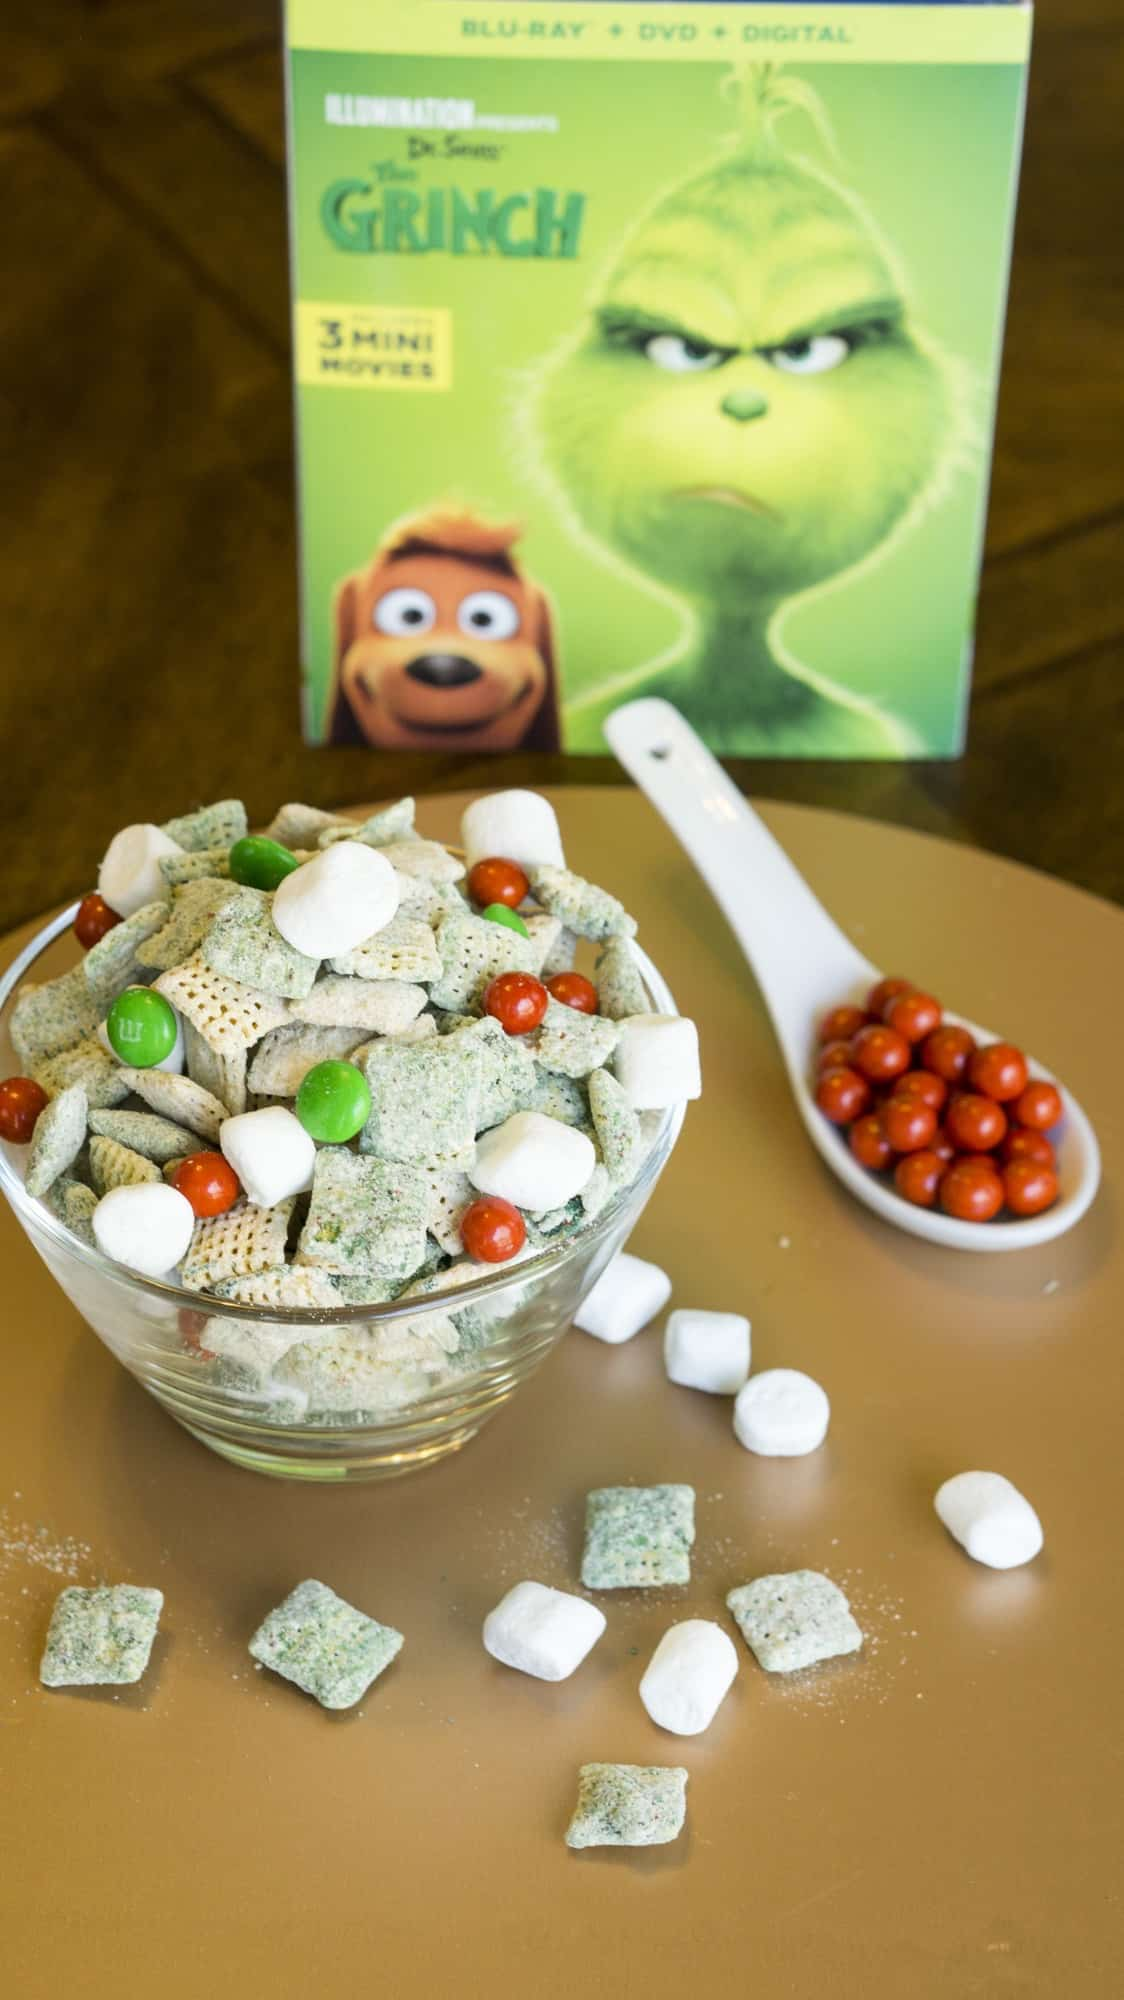 The Grinch peanut butter snack mix